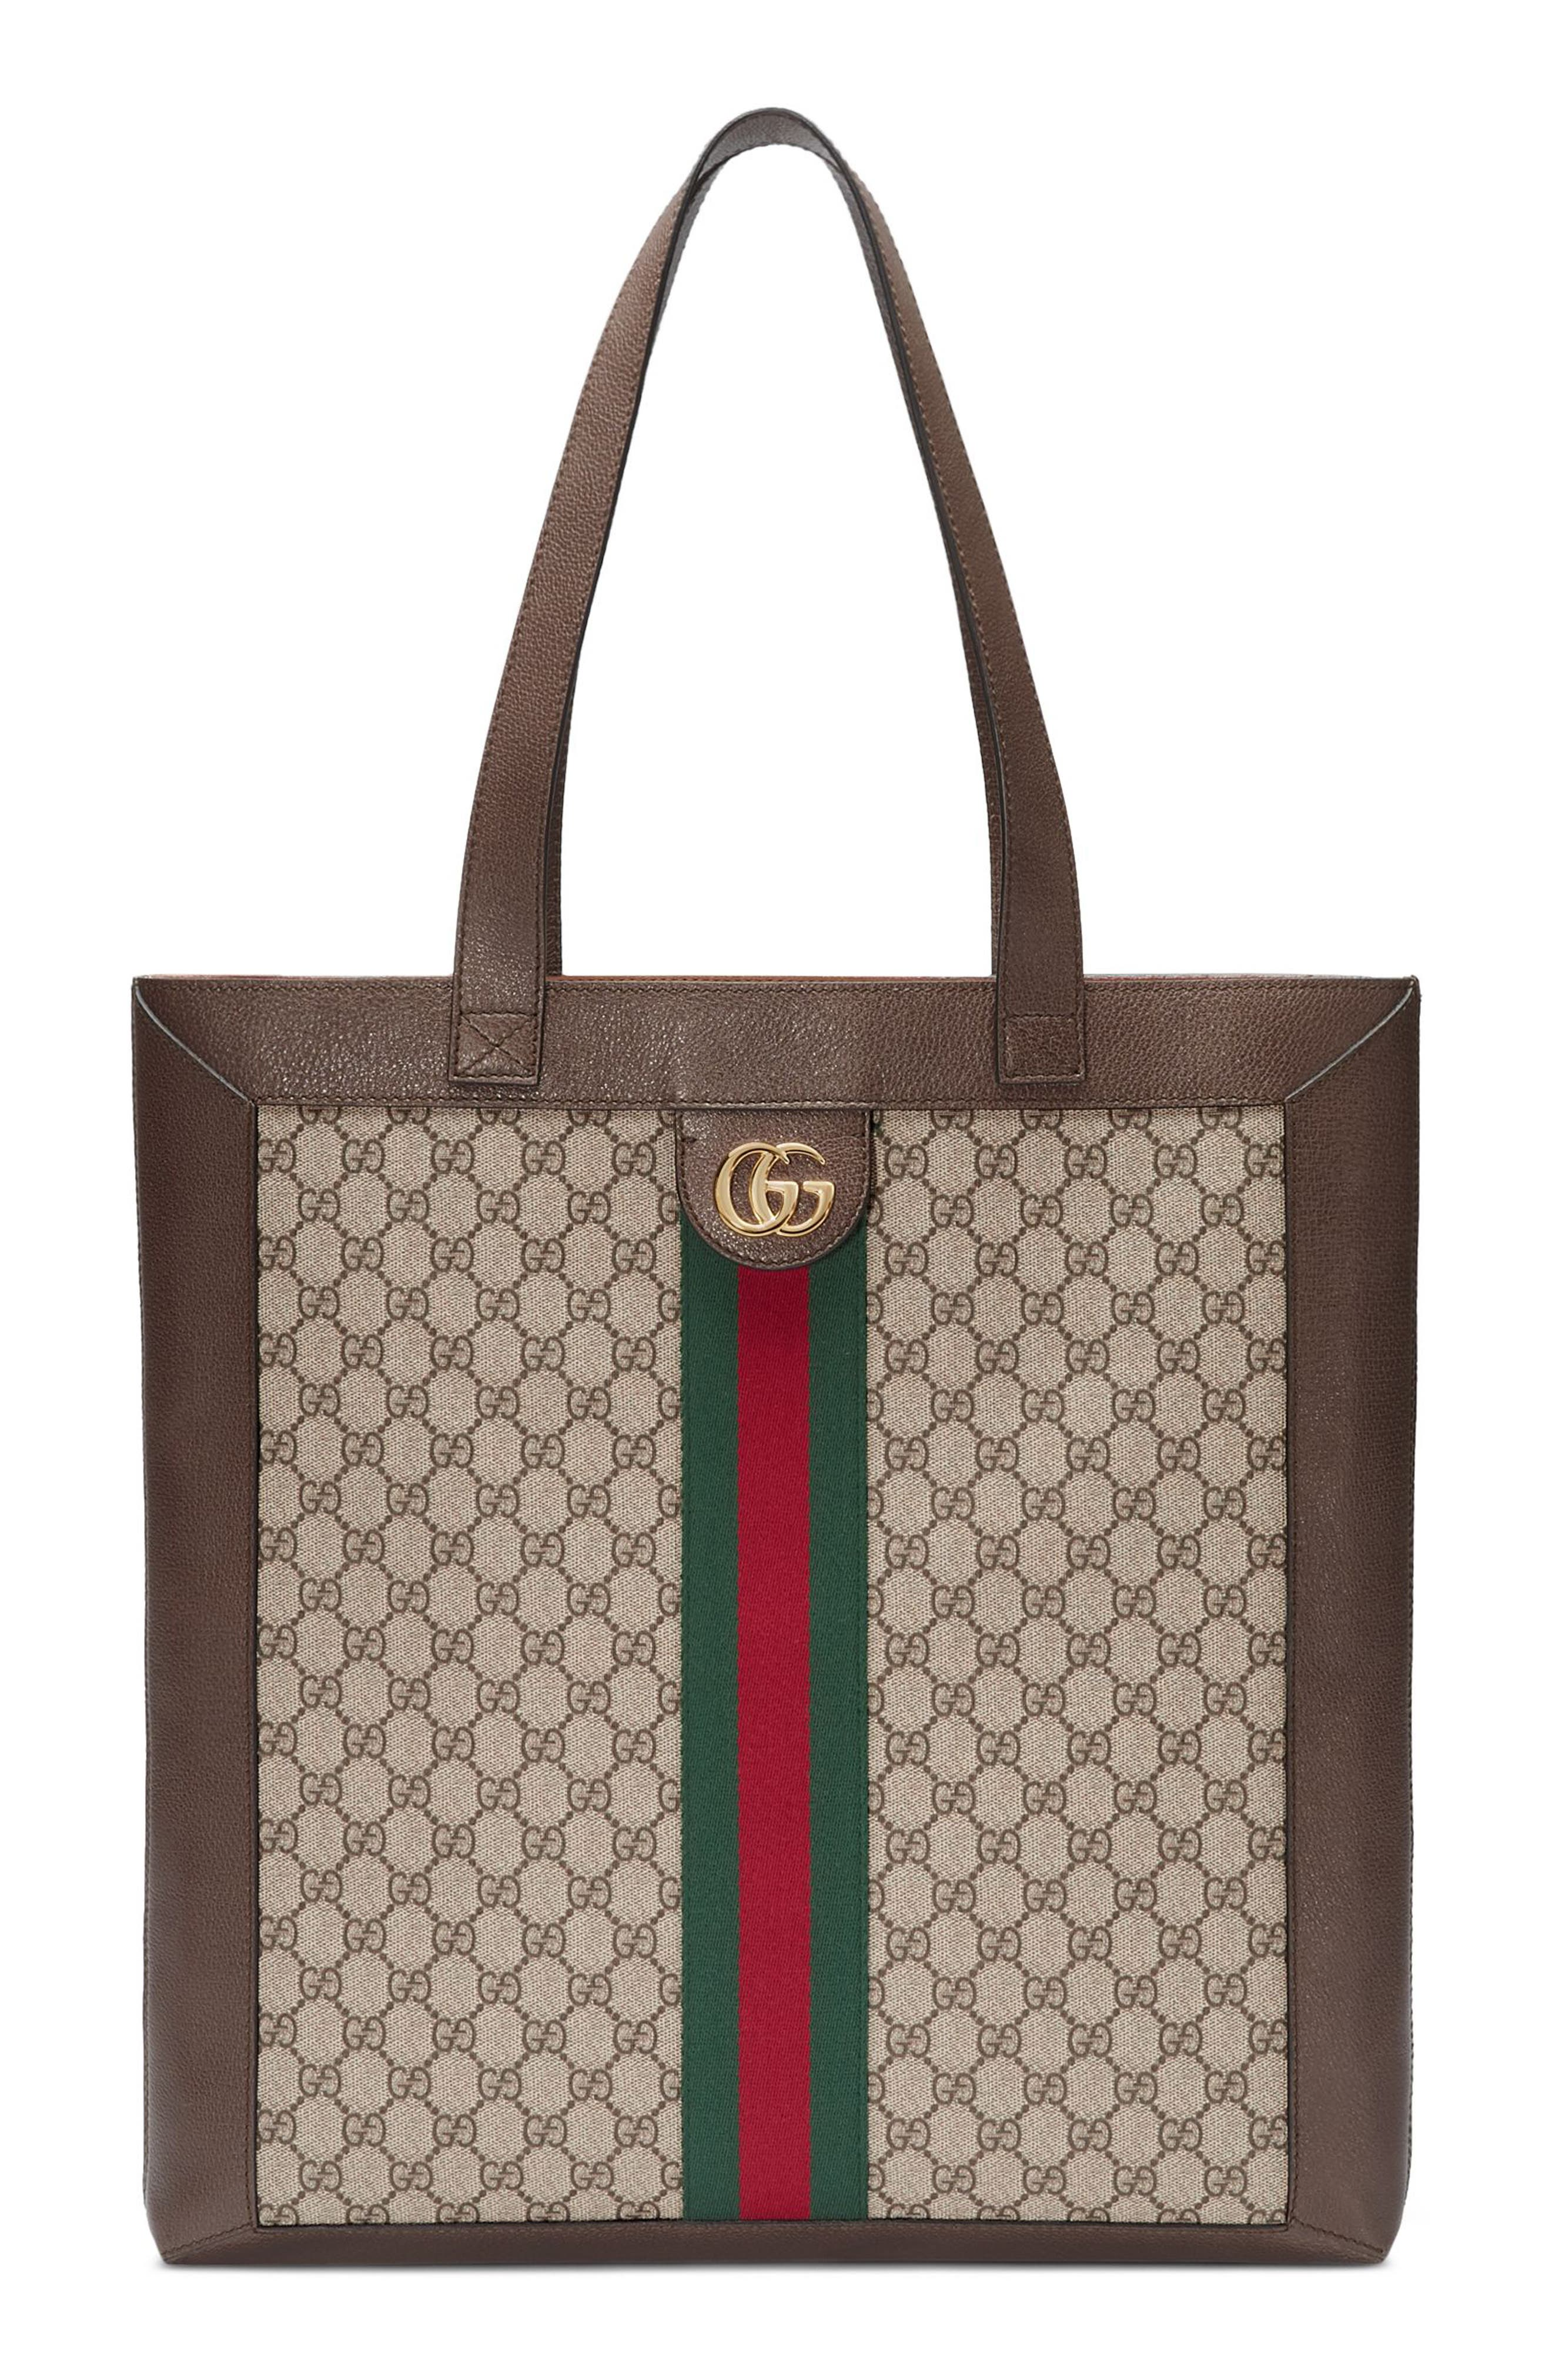 Large GG Supreme Canvas Tote,                             Main thumbnail 1, color,                             BEIGE EBONY/ ACERO/ VERT RED